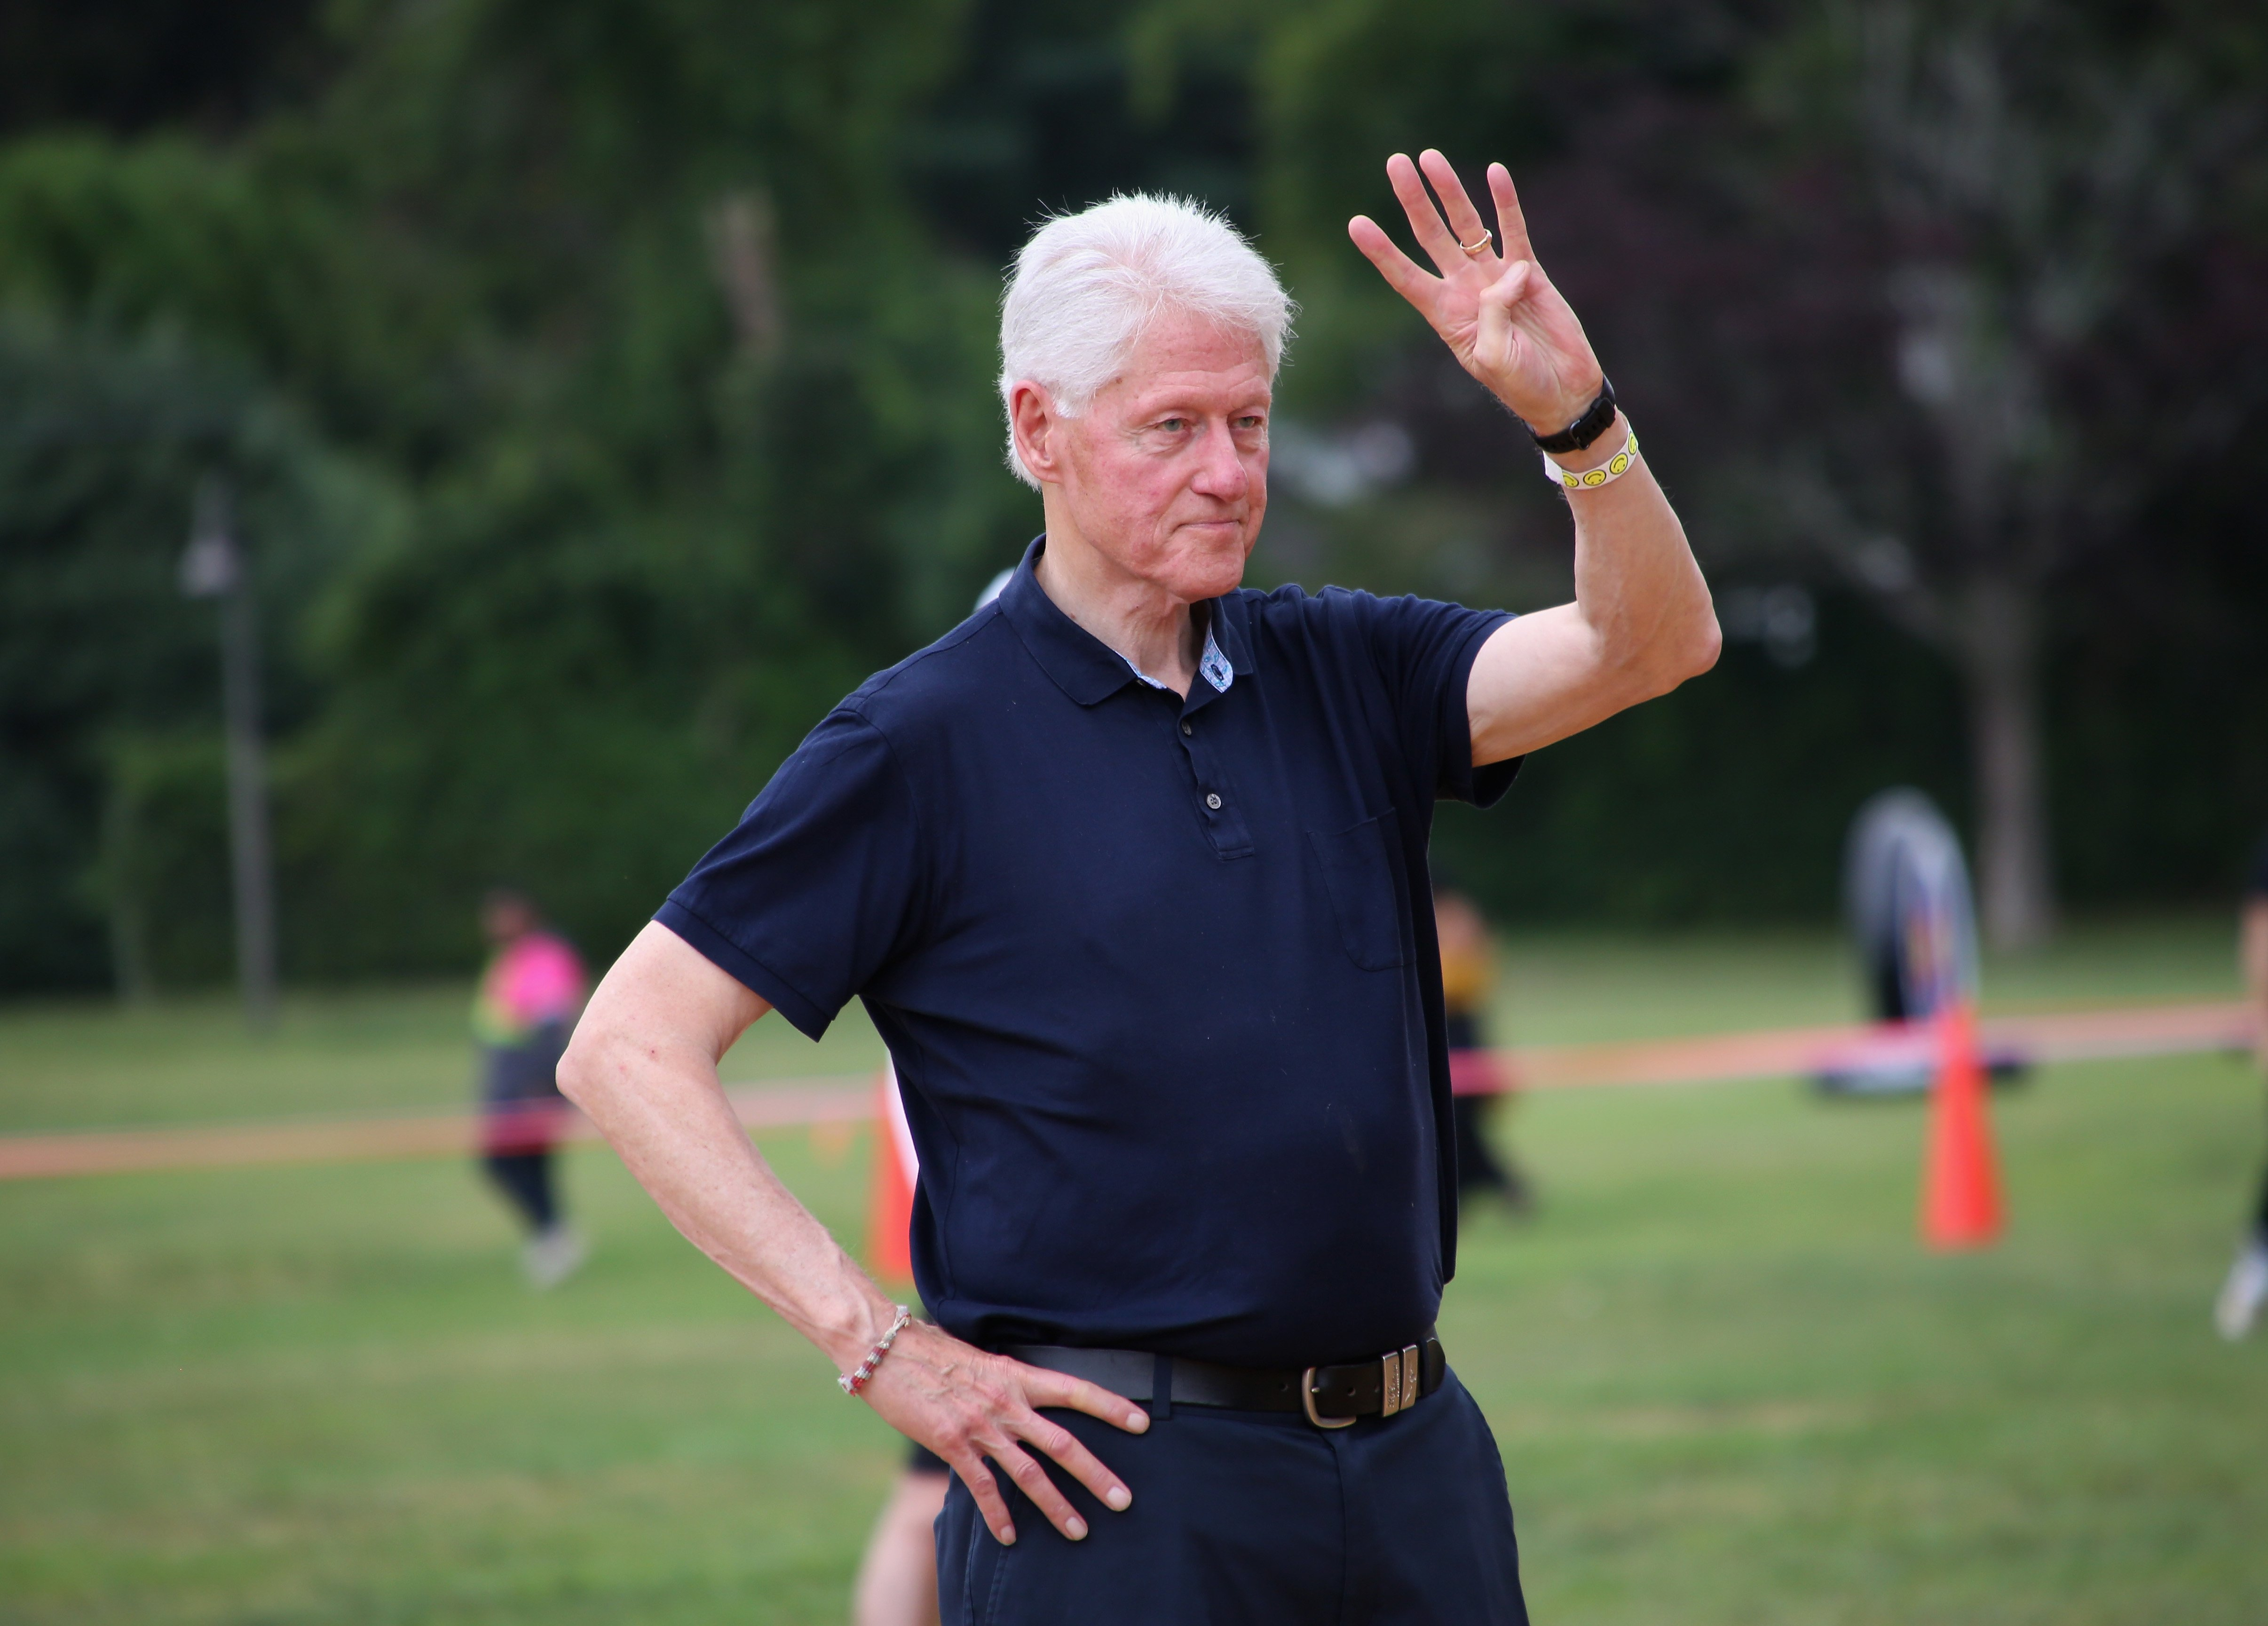 Bill Clinton at the 71st East Hampton Artists and Writers Charity Softball Game at Herrick Park on August 17, 2019 | Photo: Getty Images